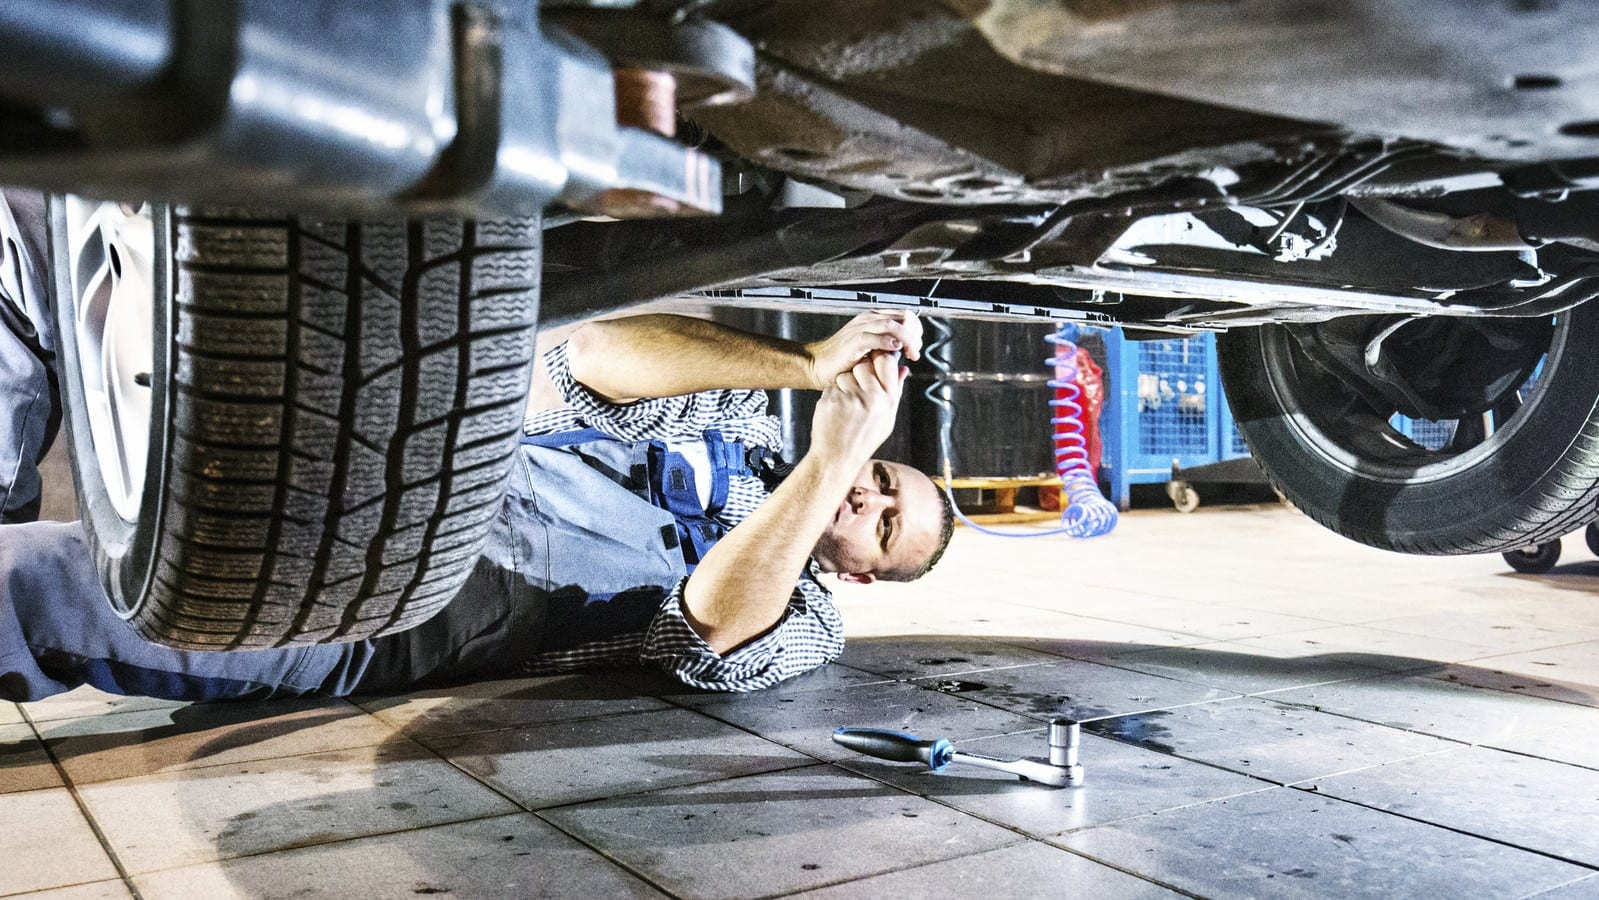 Mechanic Working Underneath A Vehicle In An Auto Body Shop Stock Photo